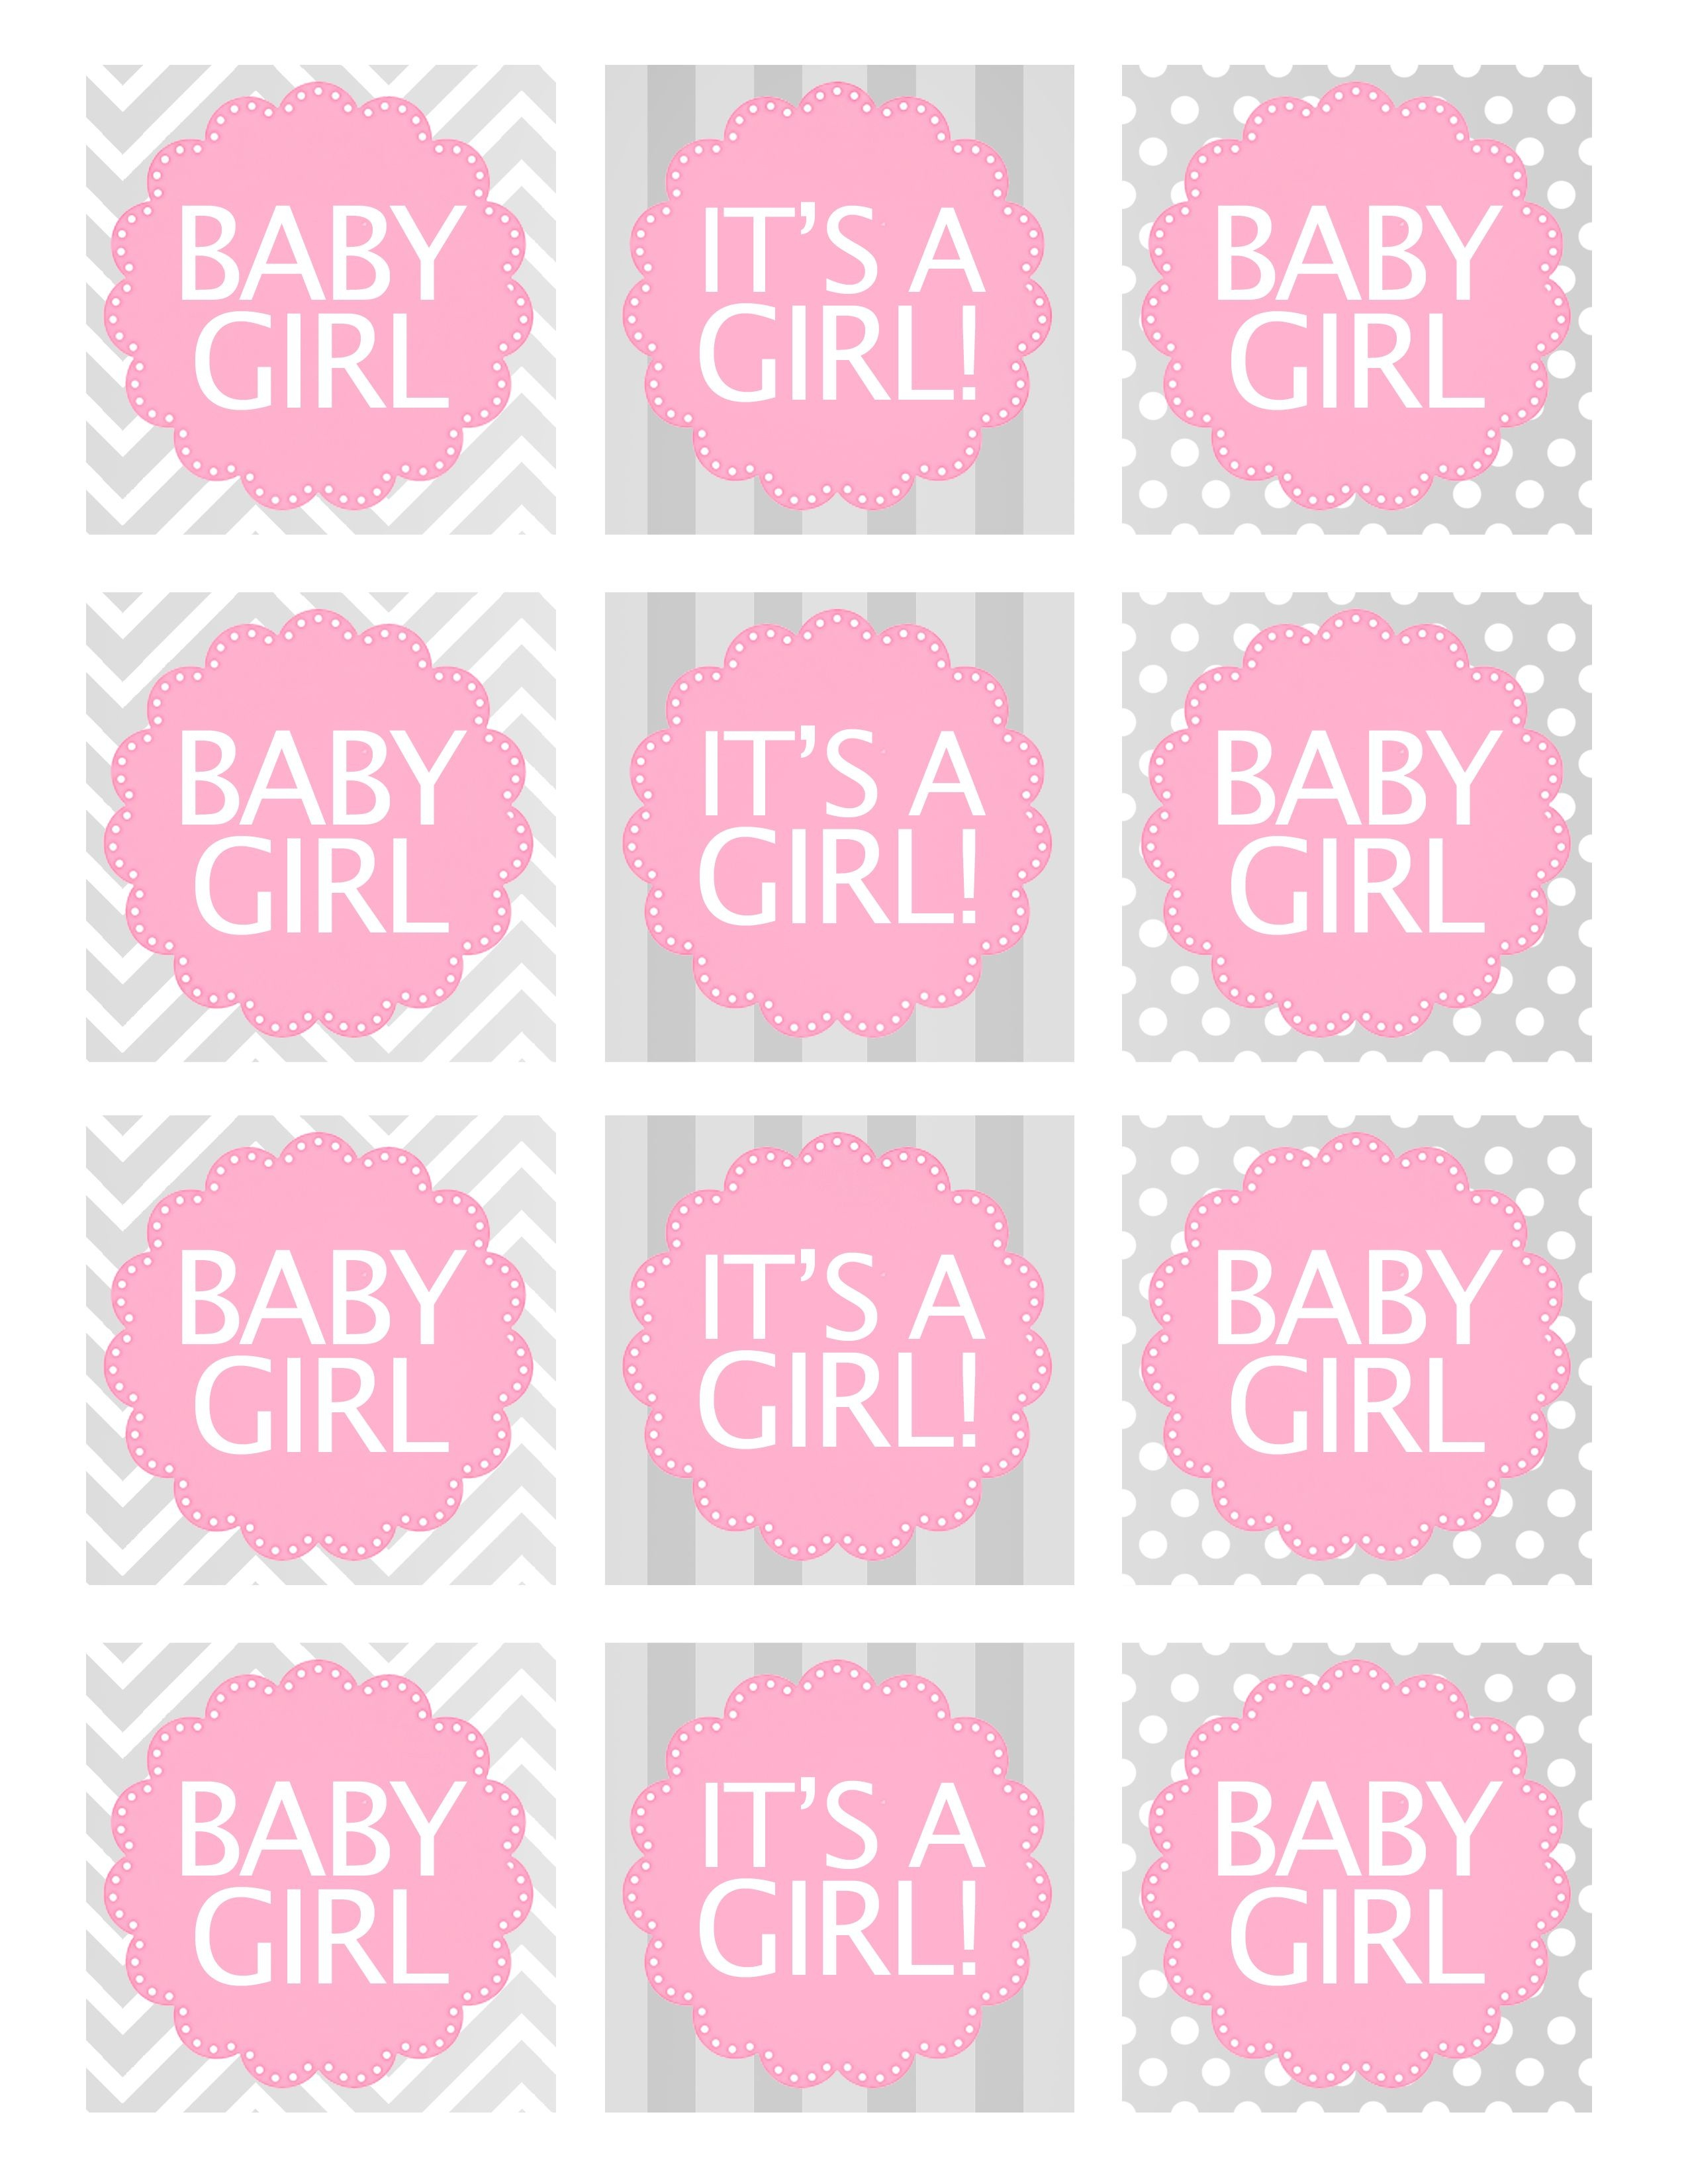 Baby Girl Shower Free Printables | Baby Shower Ideas | Baby Shower - Free Printable Baby Shower Favor Tags Template